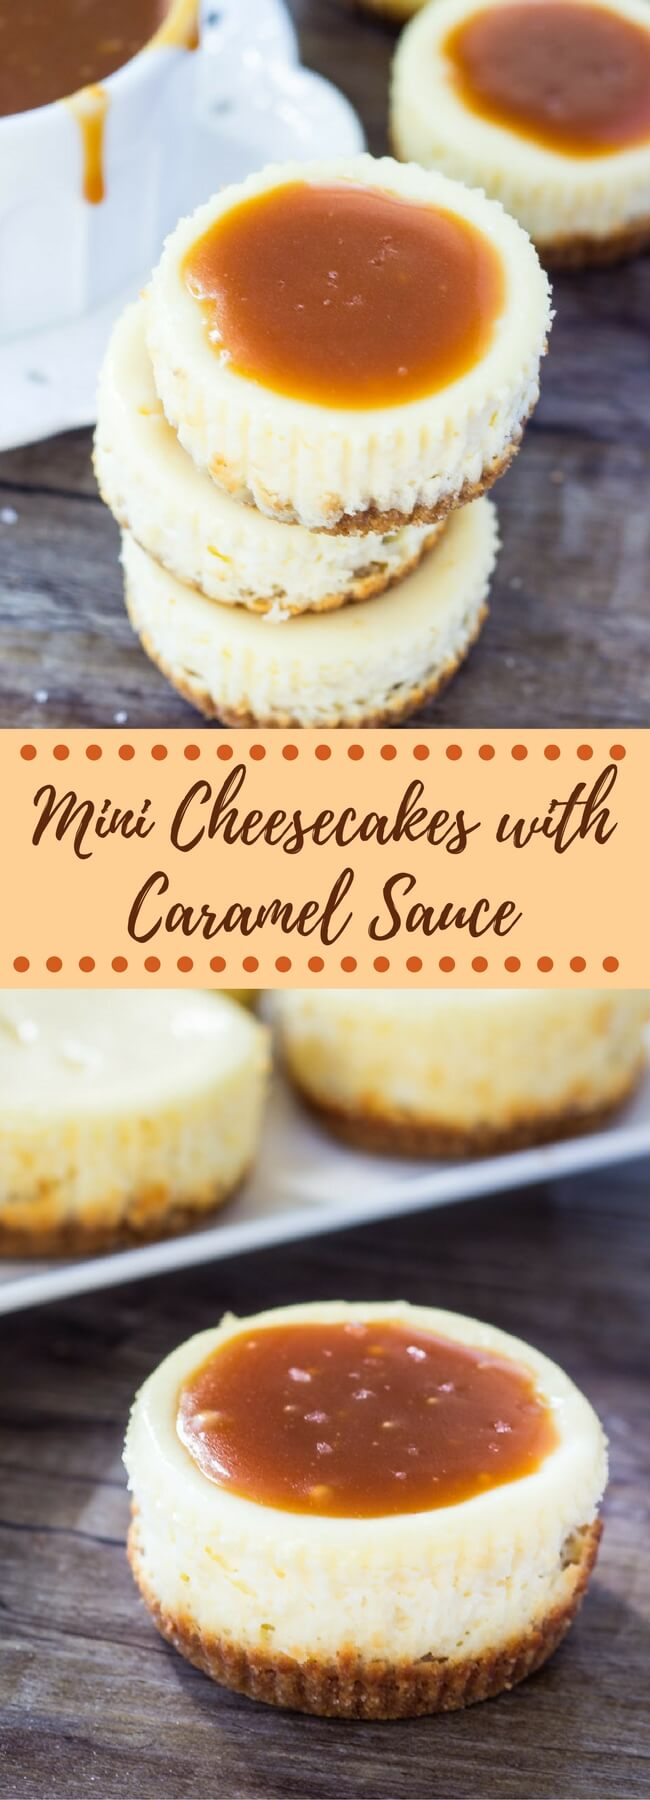 These mini cheesecakes with salted caramel sauce have a crunchy graham cracker crust, creamy cheesecake layer and are are topped with salted caramel sauce. A total crowd pleaser!